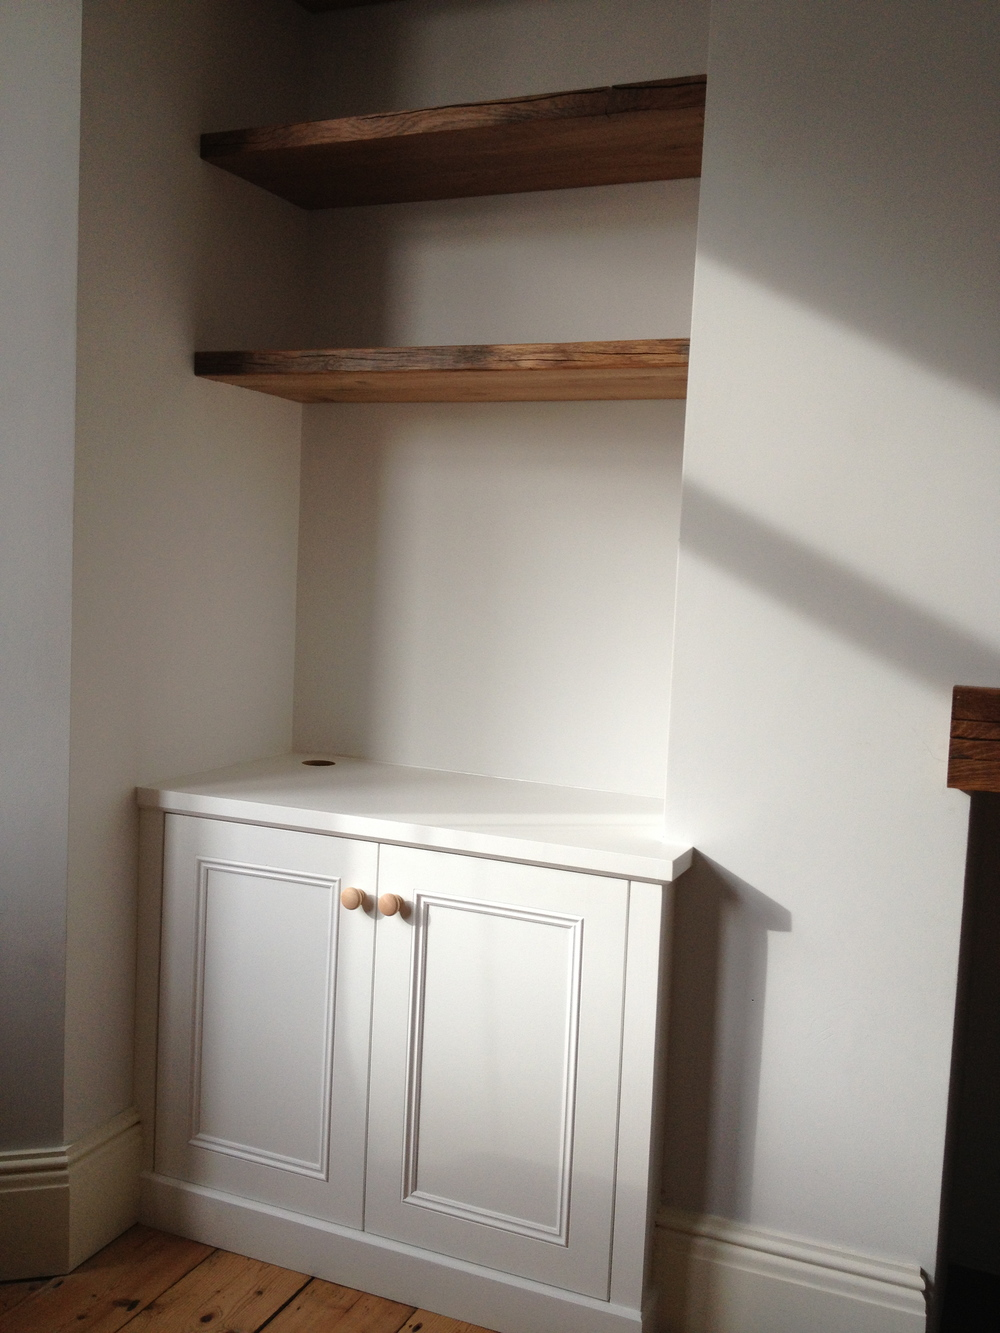 Alcove cupboard with solid oak reclaimed floating shelves